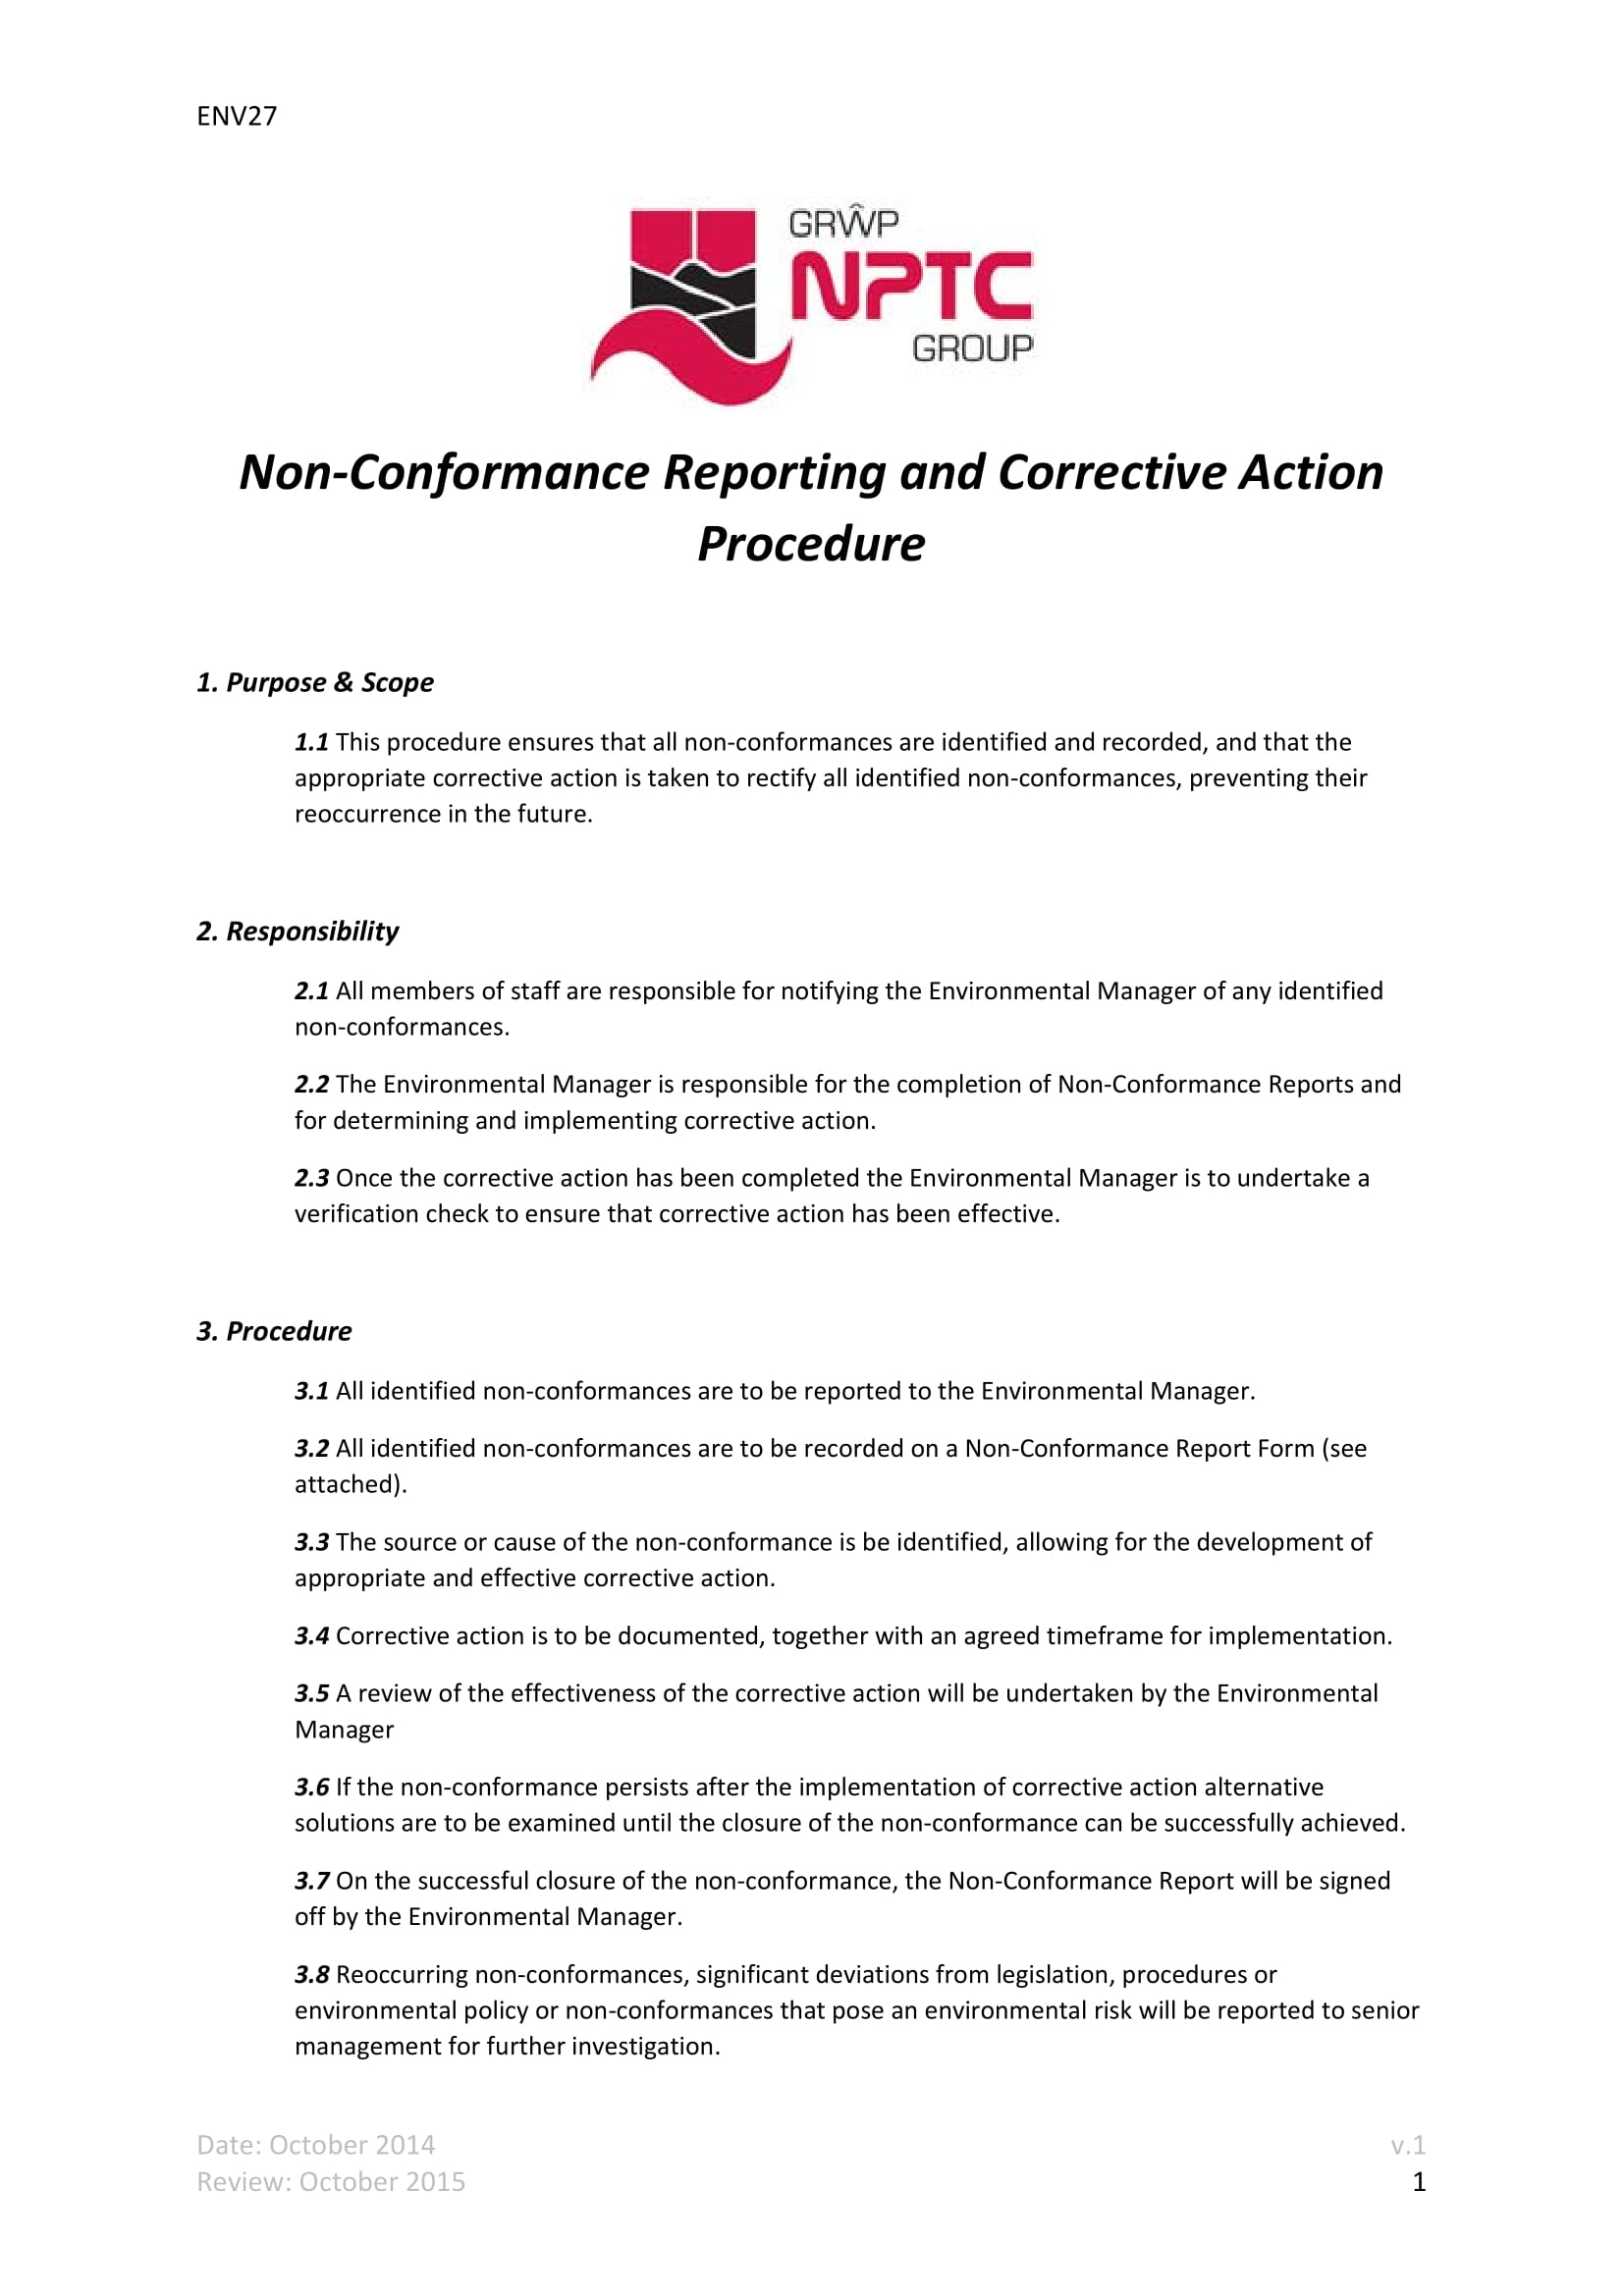 non conformance reporting and corrective action procedure example 1